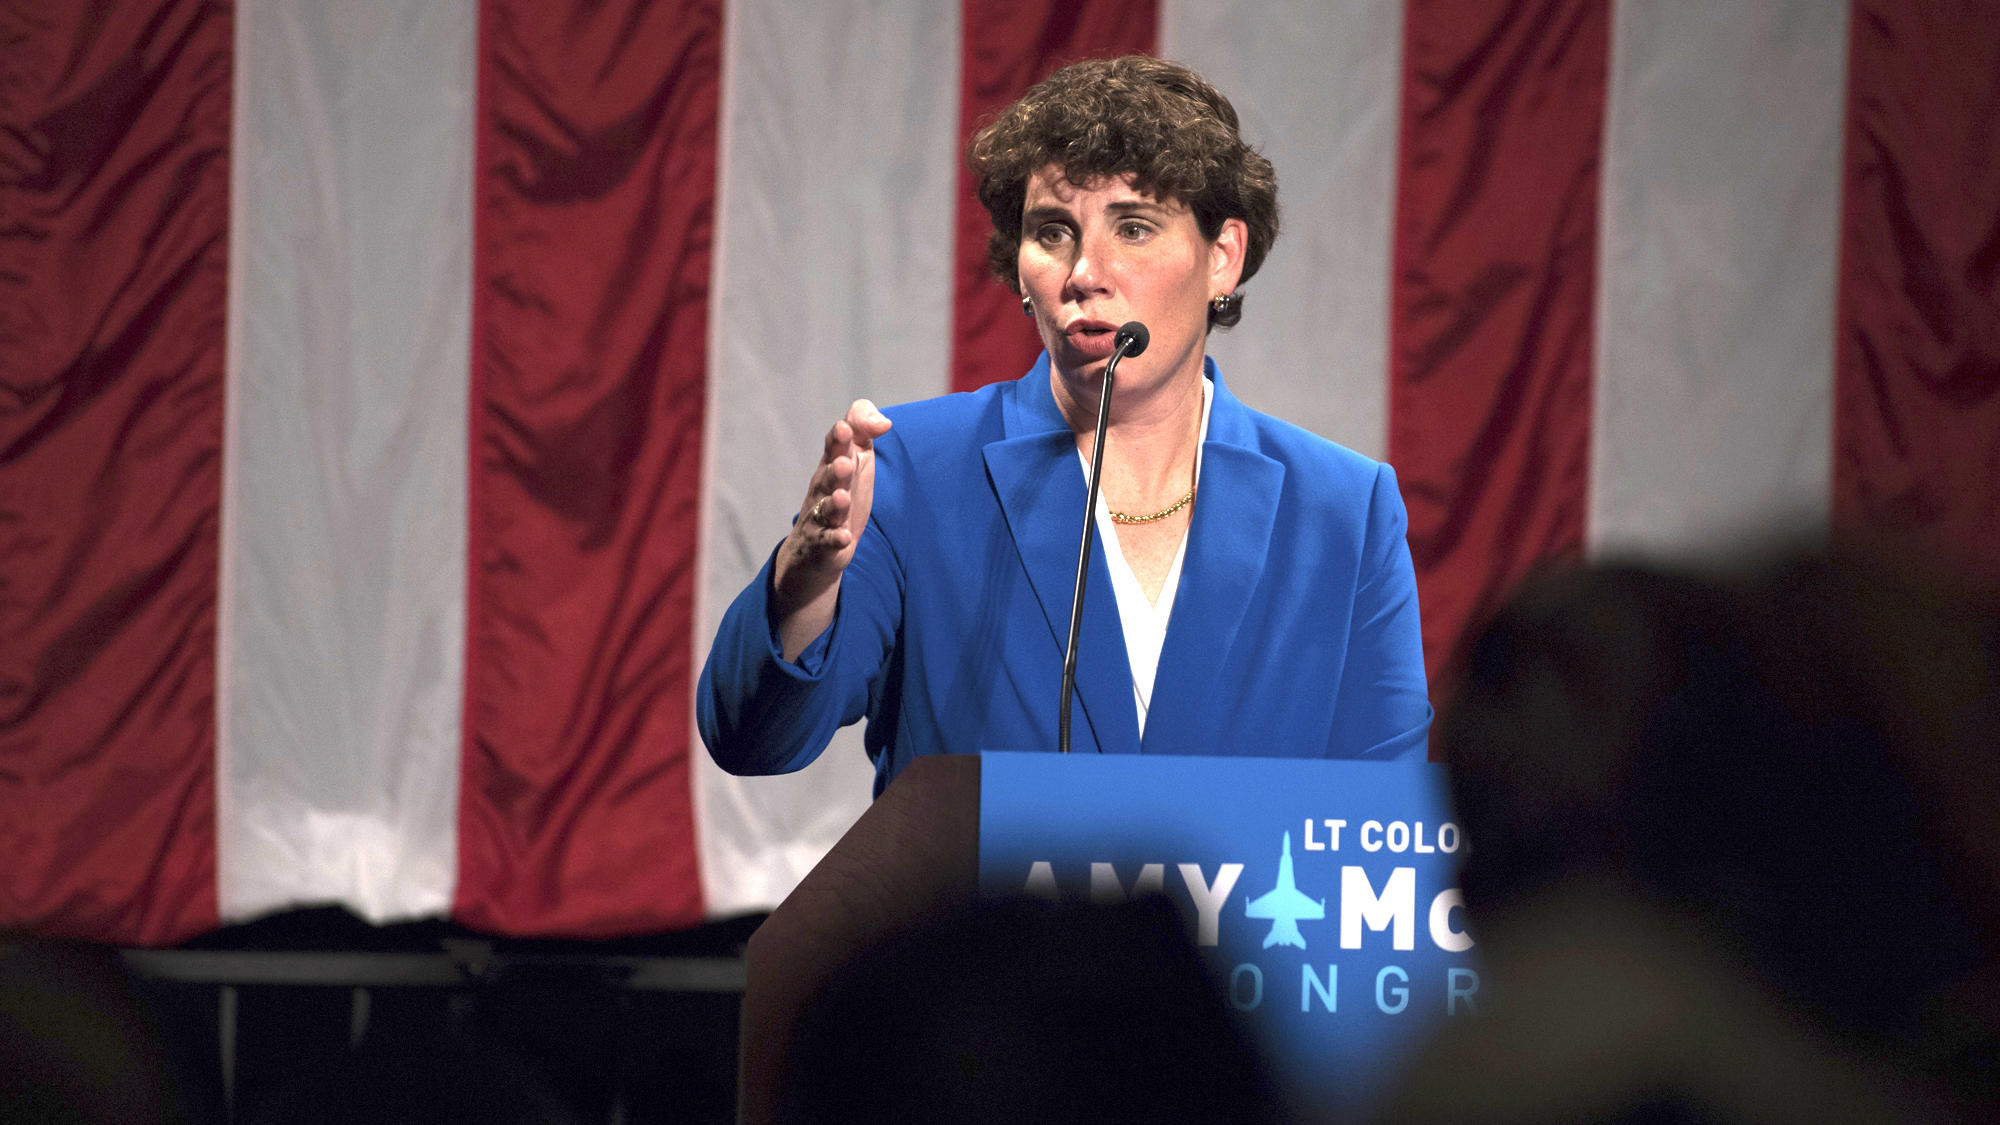 Amy Mcgrath Is Projected To Edge Out Charles Booker In Ky Senate Democratic Primary Npr Illinois